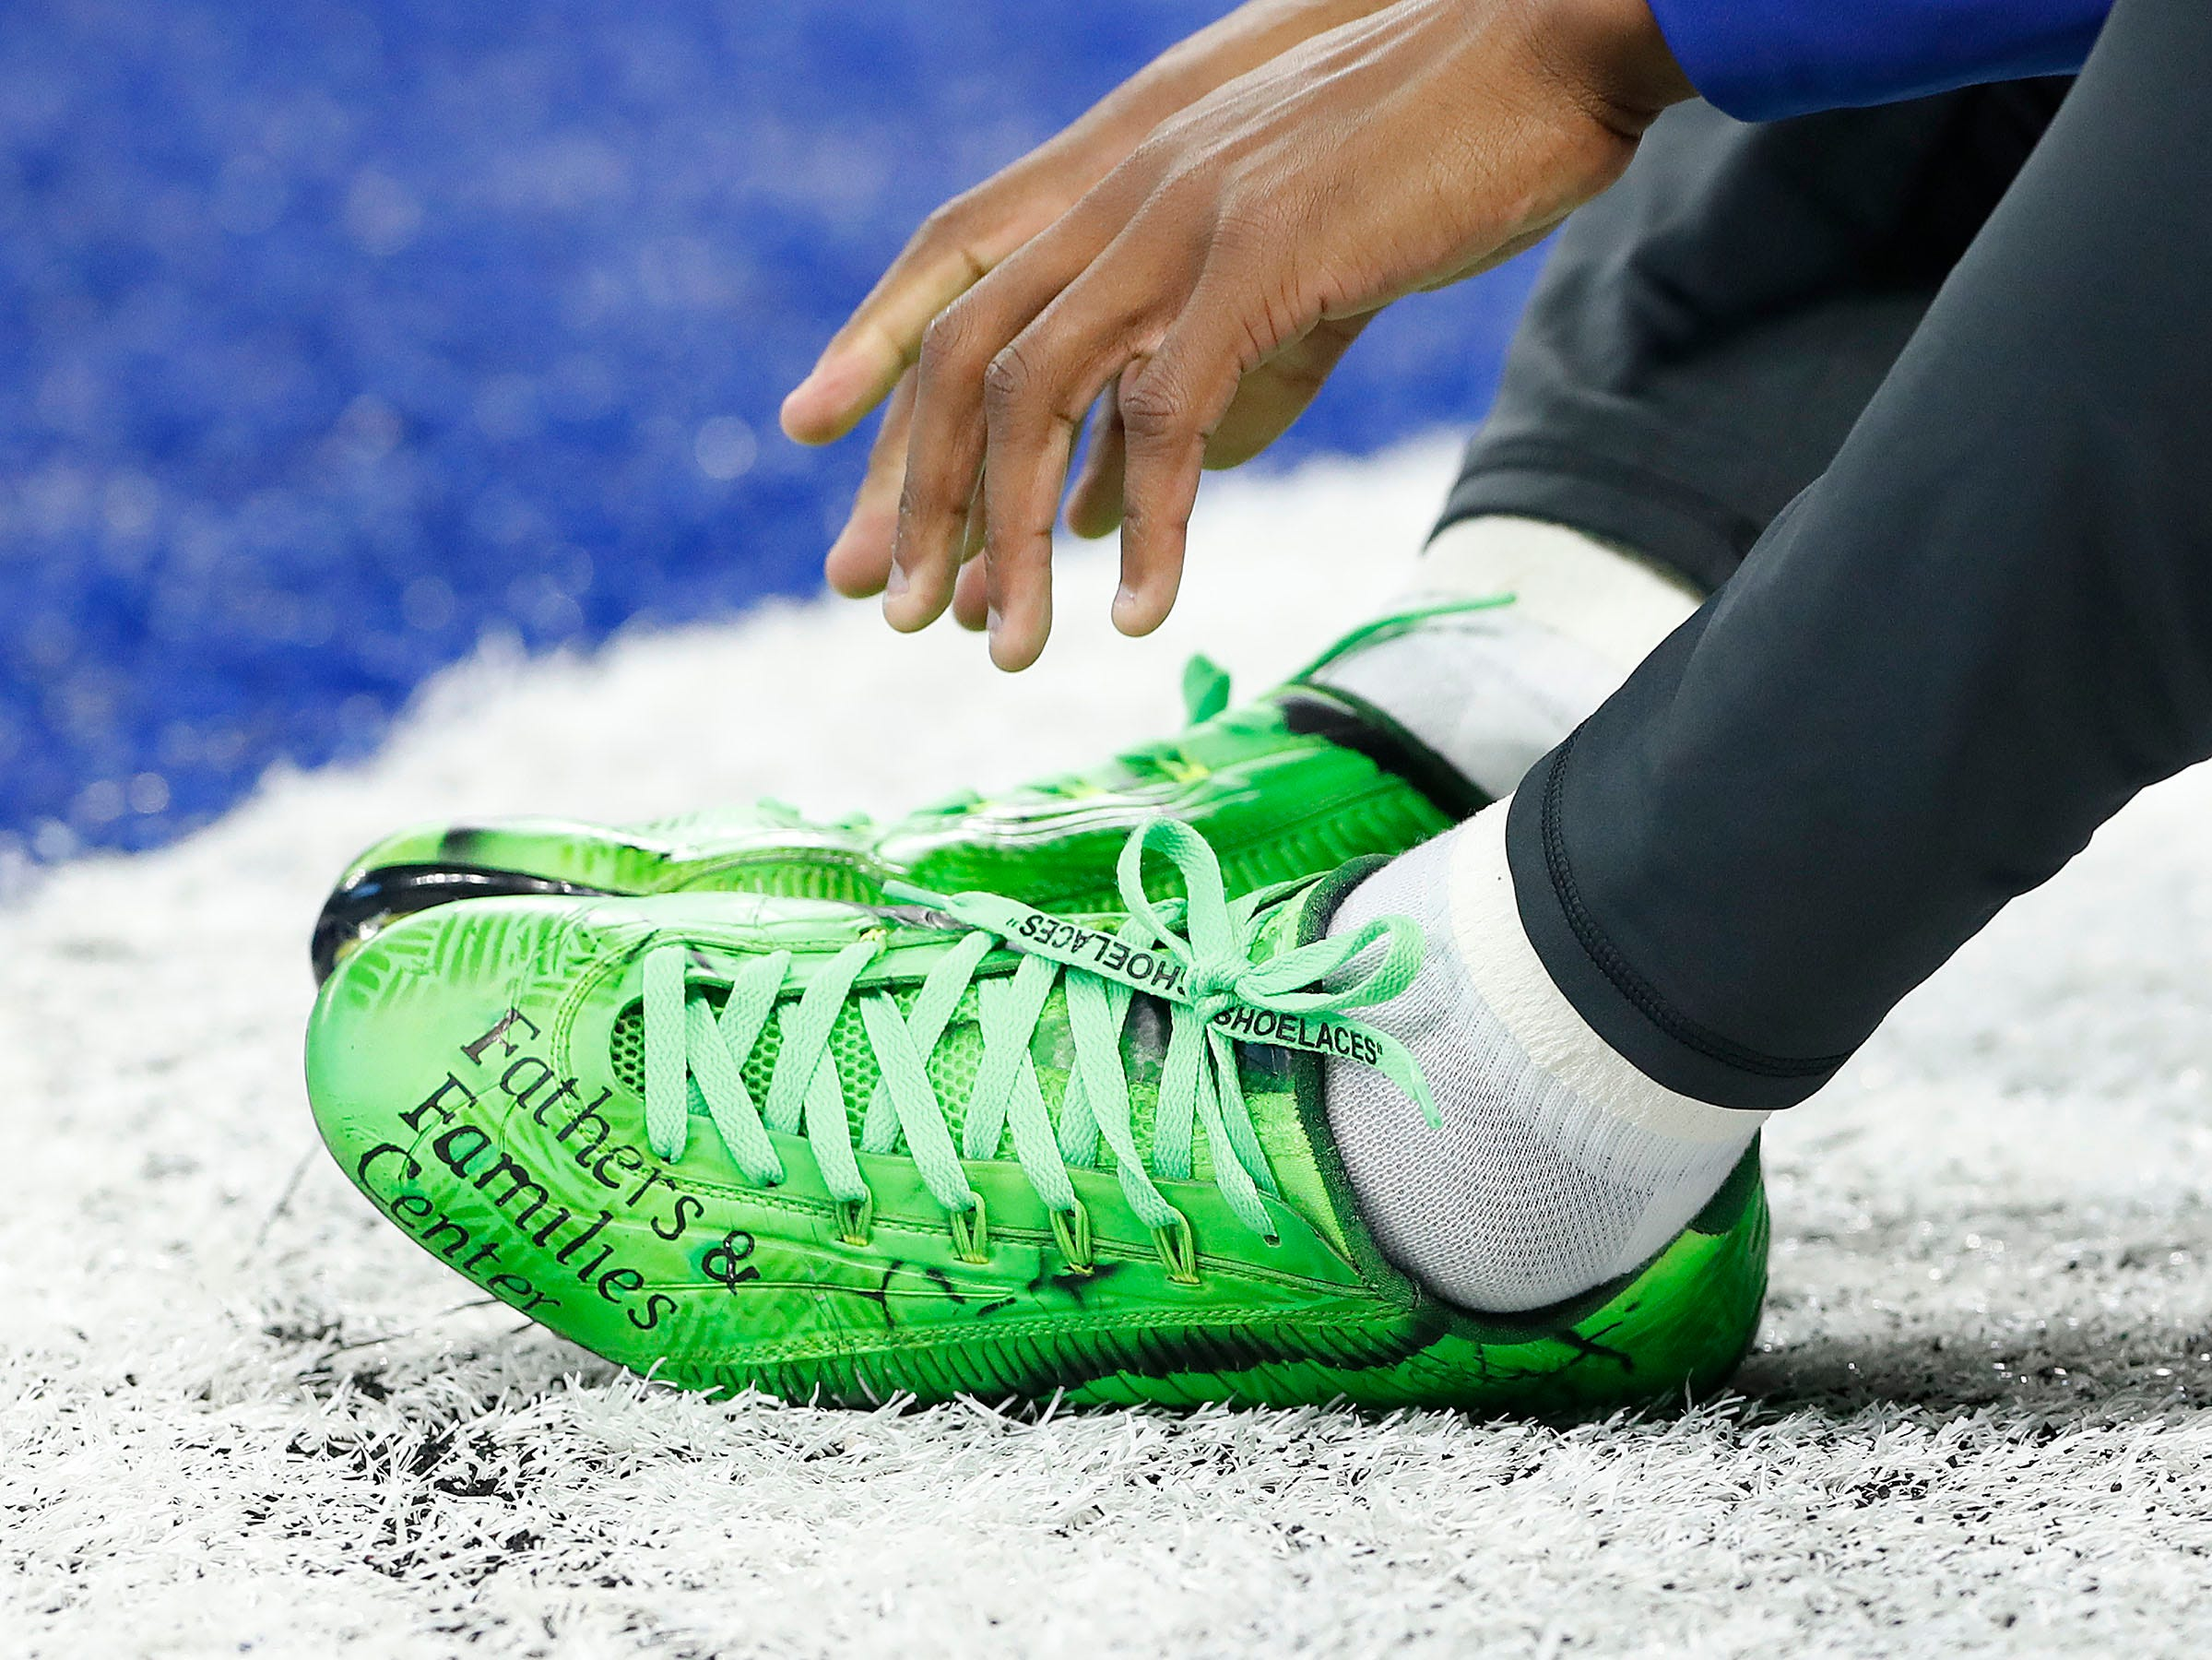 Indianapolis Colts wide receiver T.Y. Hilton (13) and his My Cleats, My Cause before the start of their game against the Dallas Cowboys at Lucas Oil Stadium on Sunday, Dec. 16, 2018.